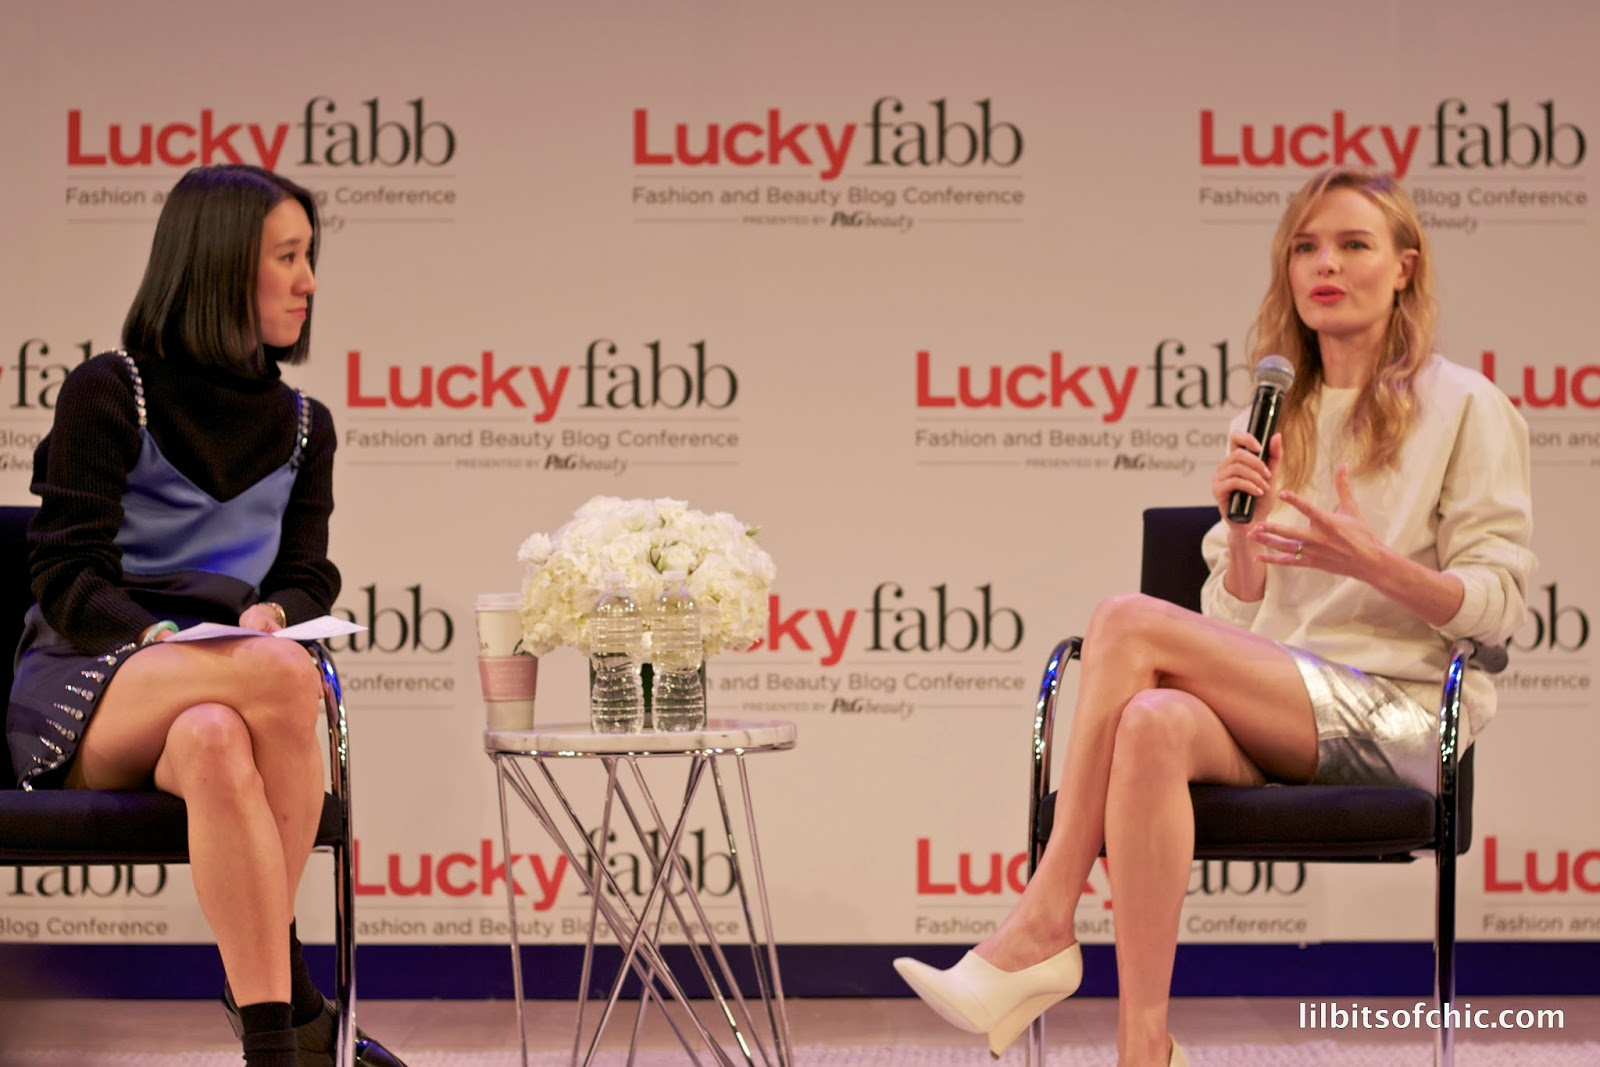 Kate Bosworth at luckyfabb